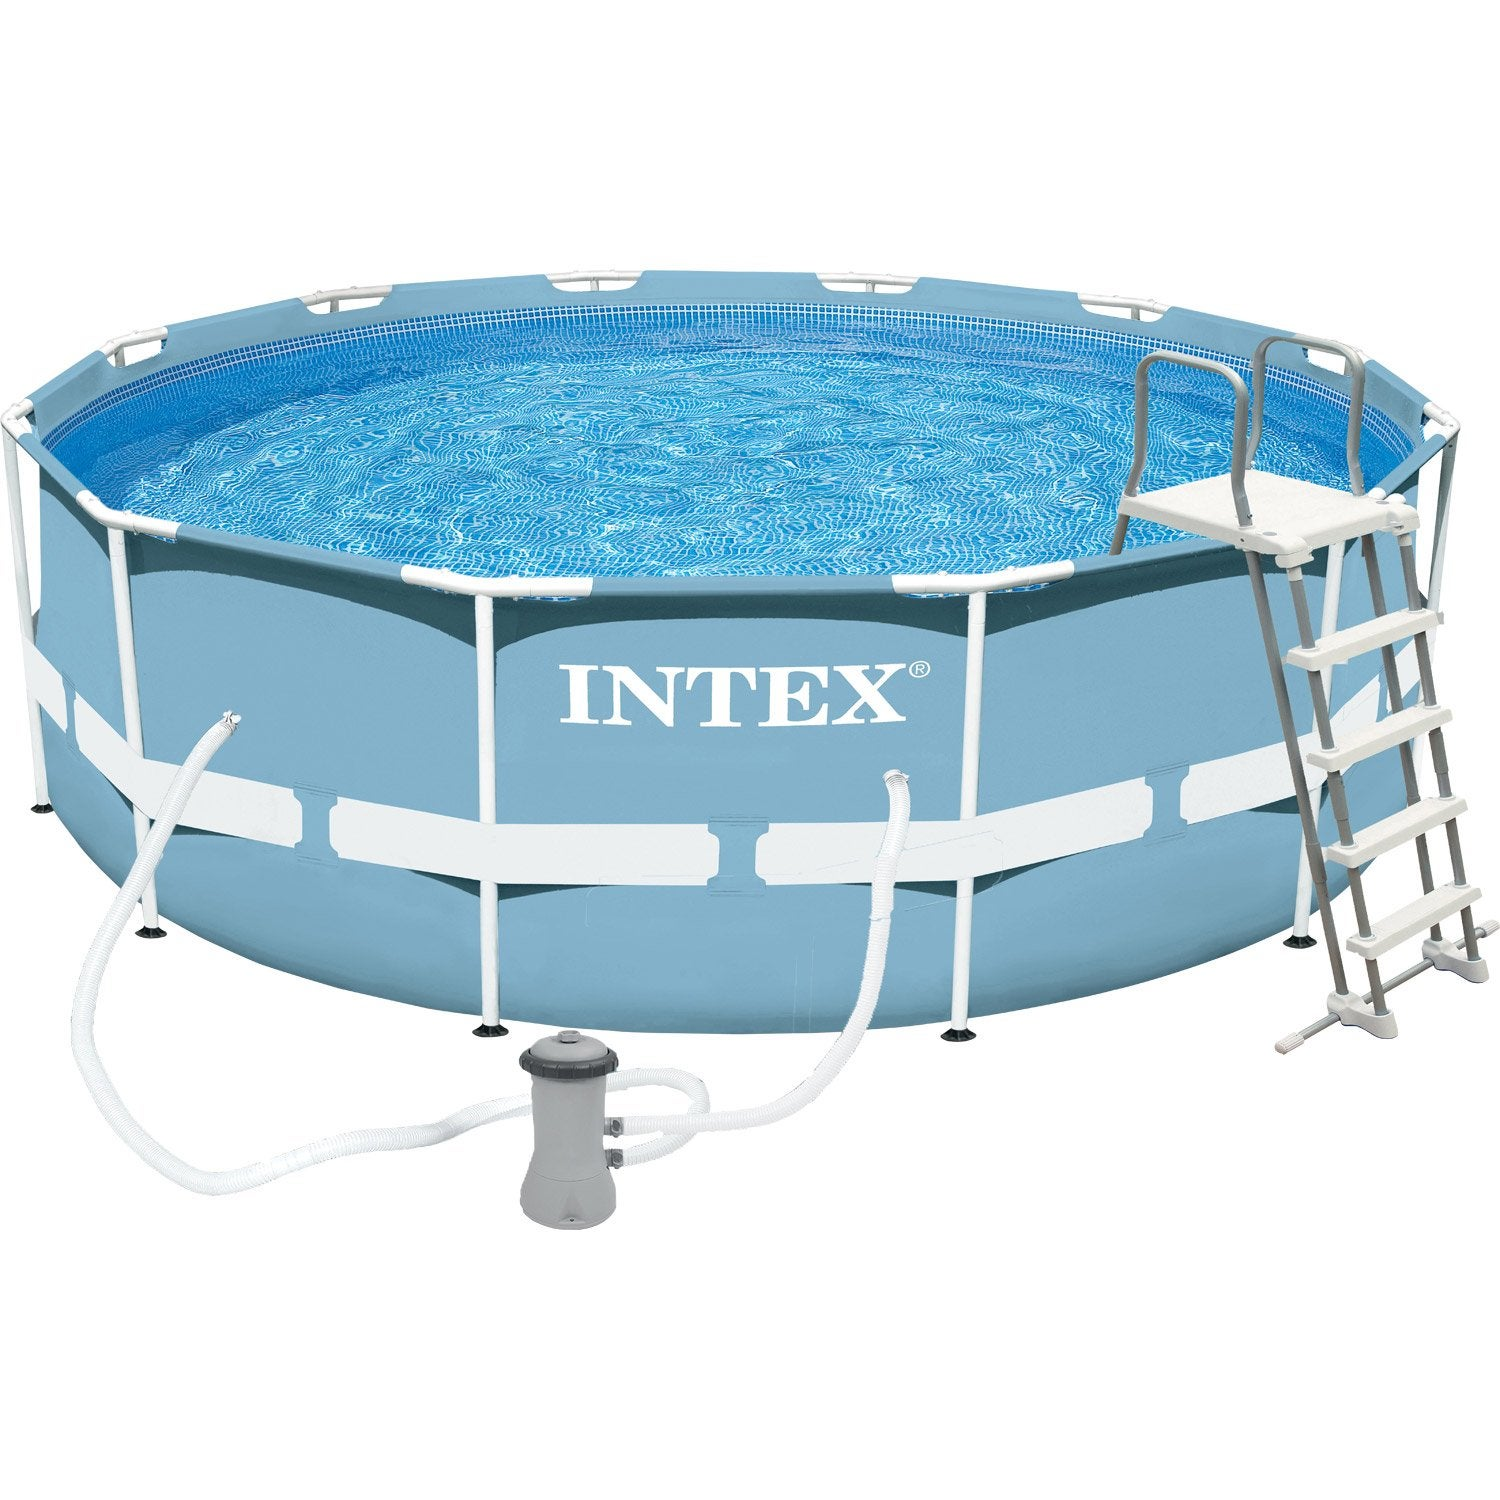 Piscine hors sol autoportante tubulaire prism frame intex for Rechauffeur piscine hors sol intex